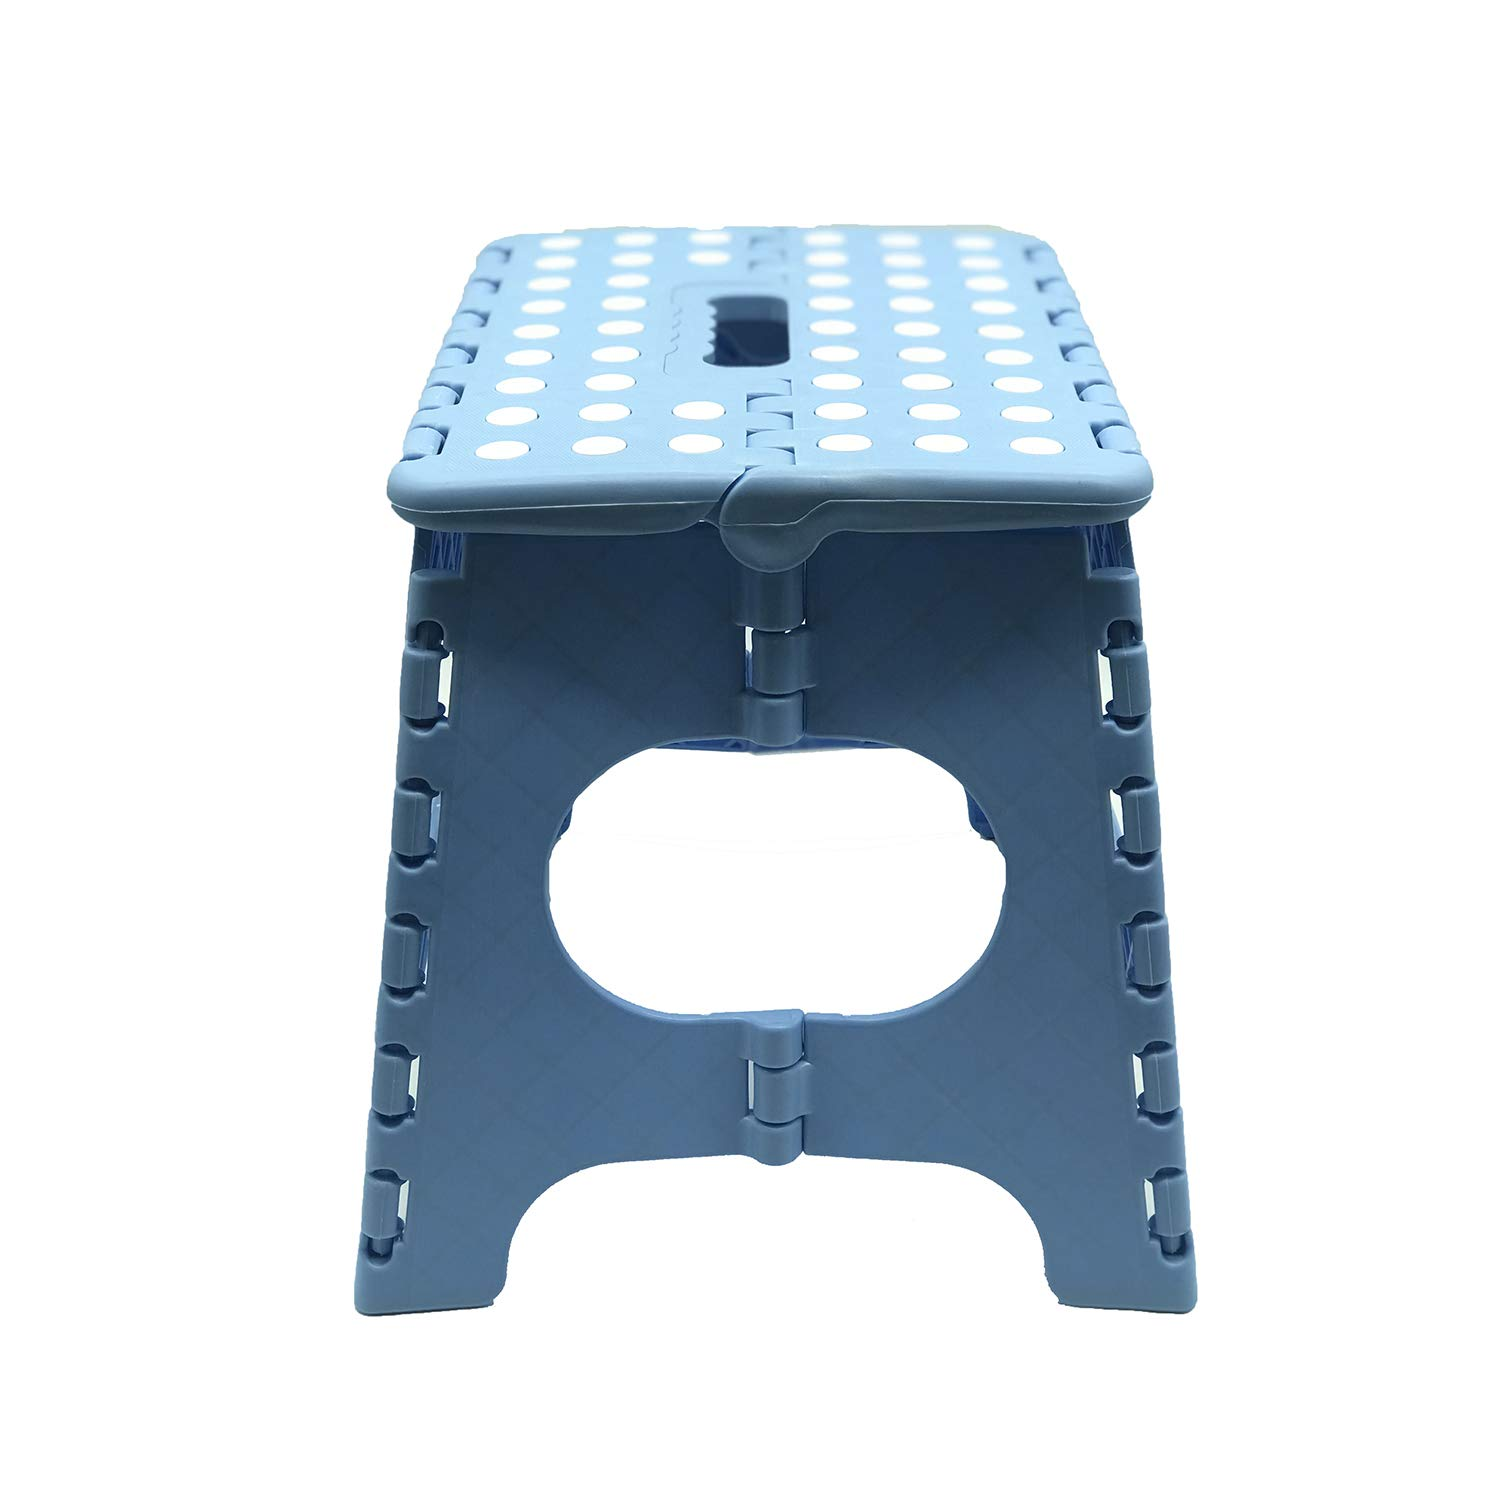 """Folding Step Stool Non-Slip 9/"""" x 11/"""" Platform Holds Up to 300 lbs Blue 11 inch Height Premium Heavy Duty Foldable Stool For Kids /& Adults Kitchen Garden Bathroom Stepping Stool with Handle"""